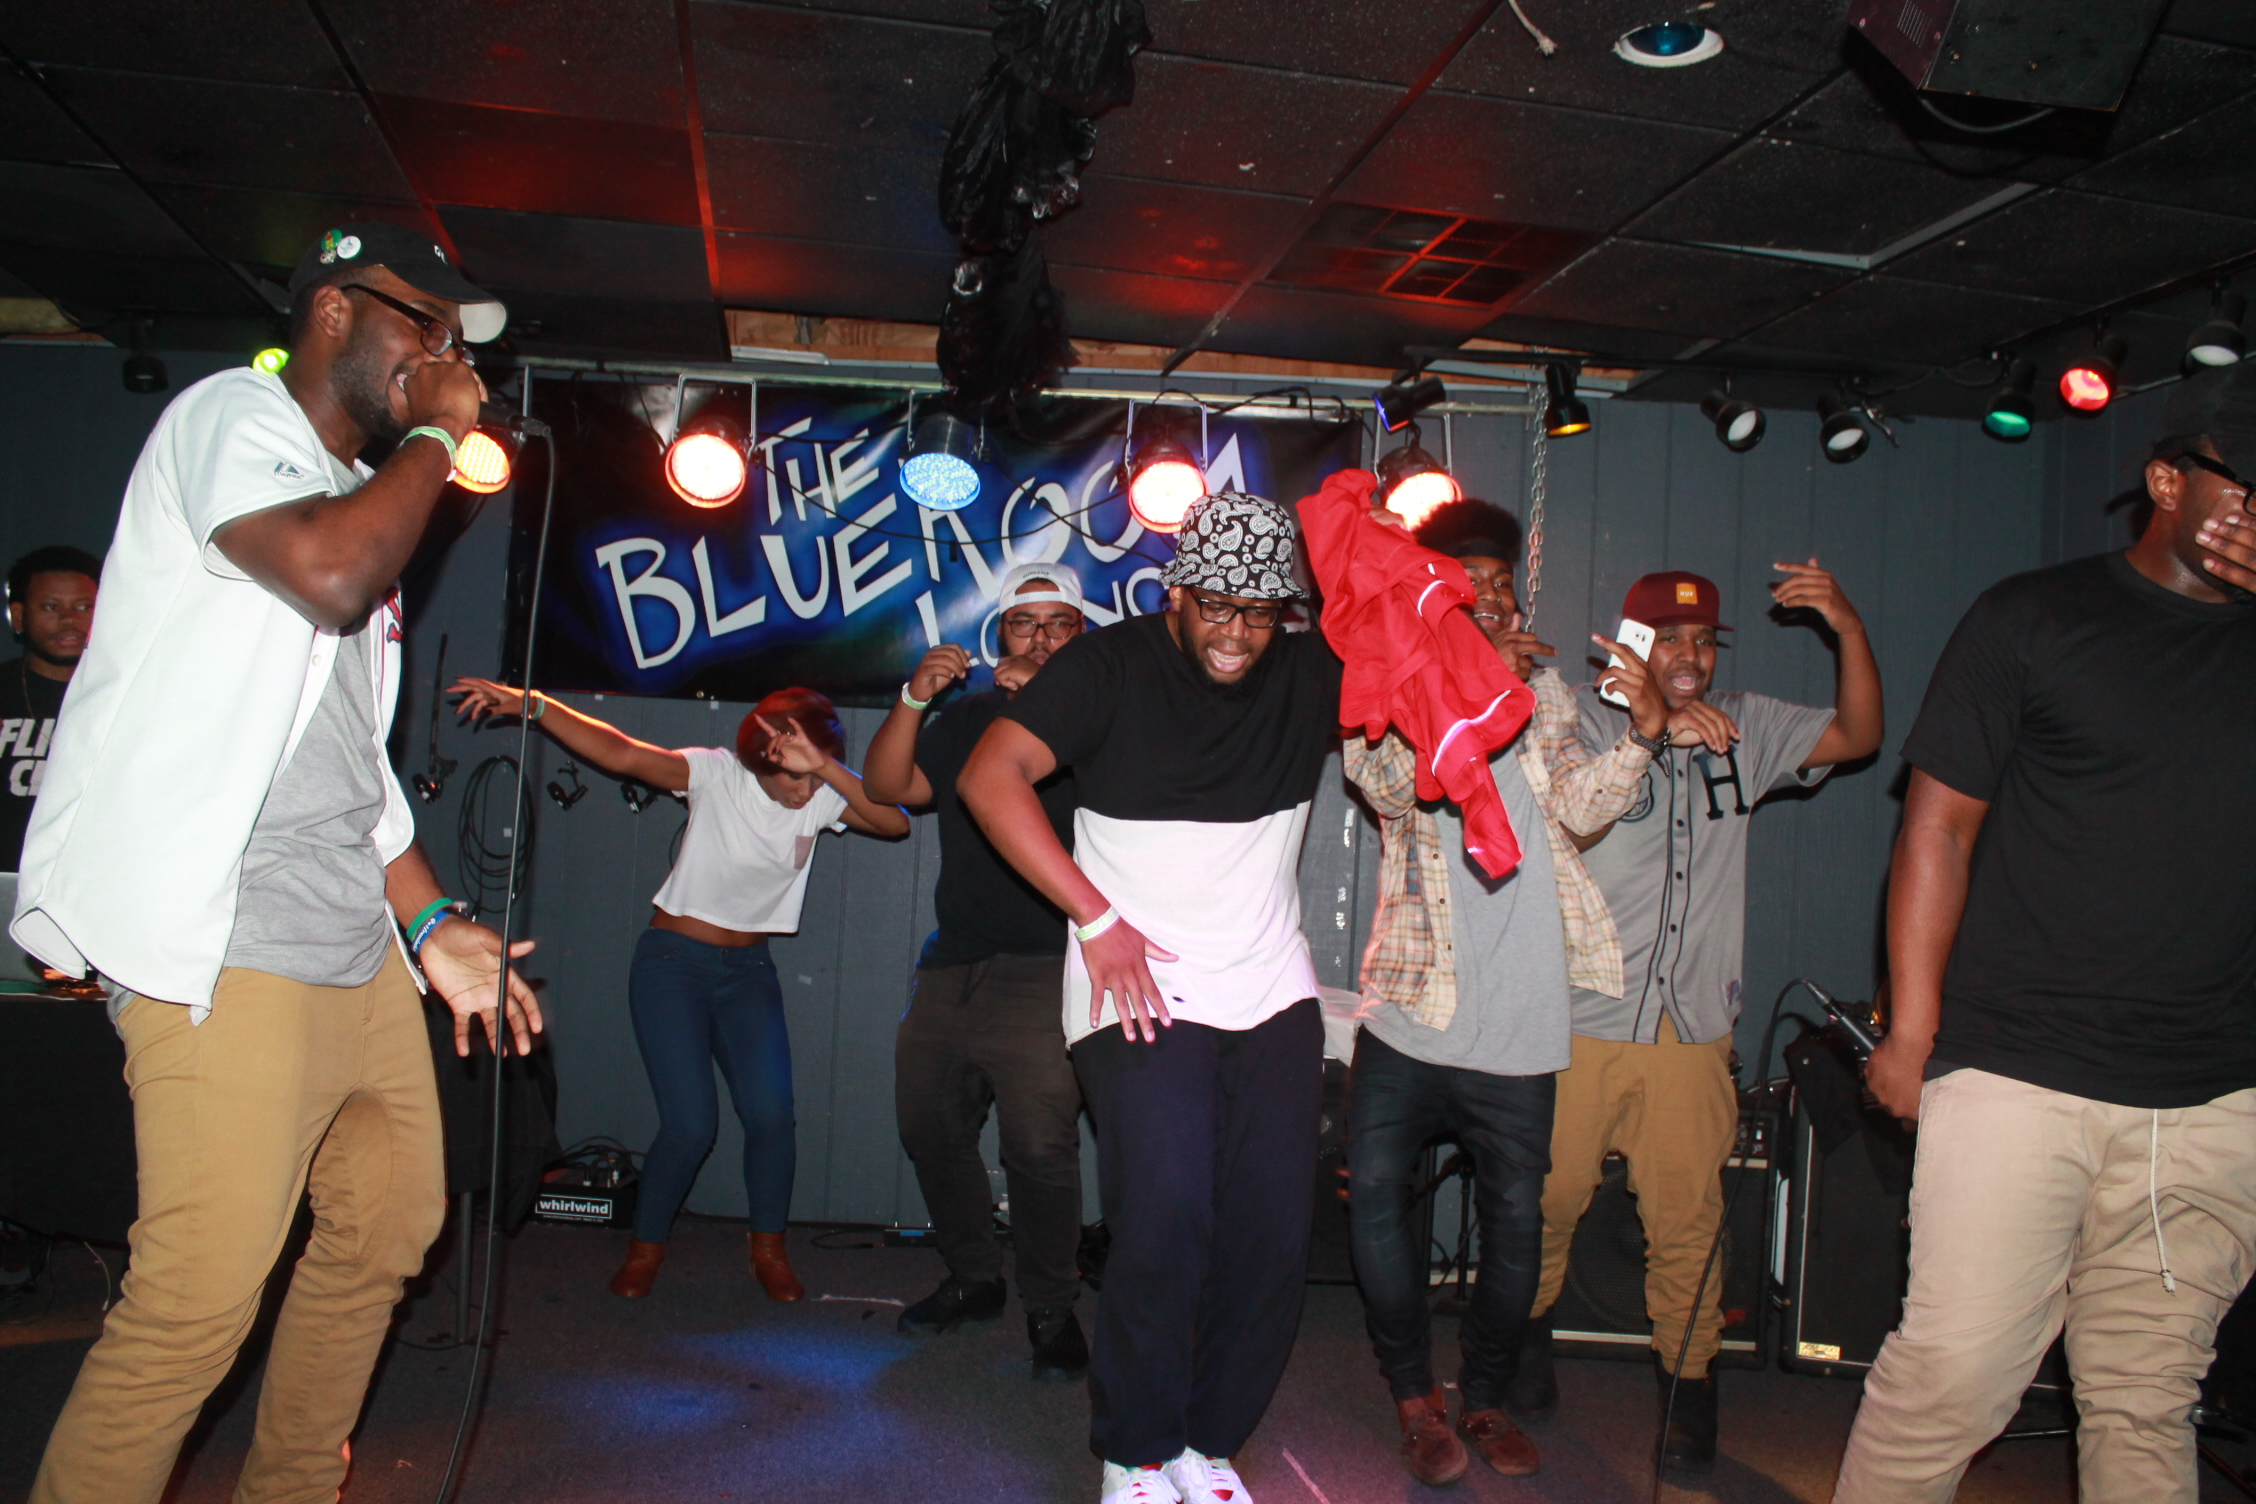 PeteyXKraze @ The Blueroom